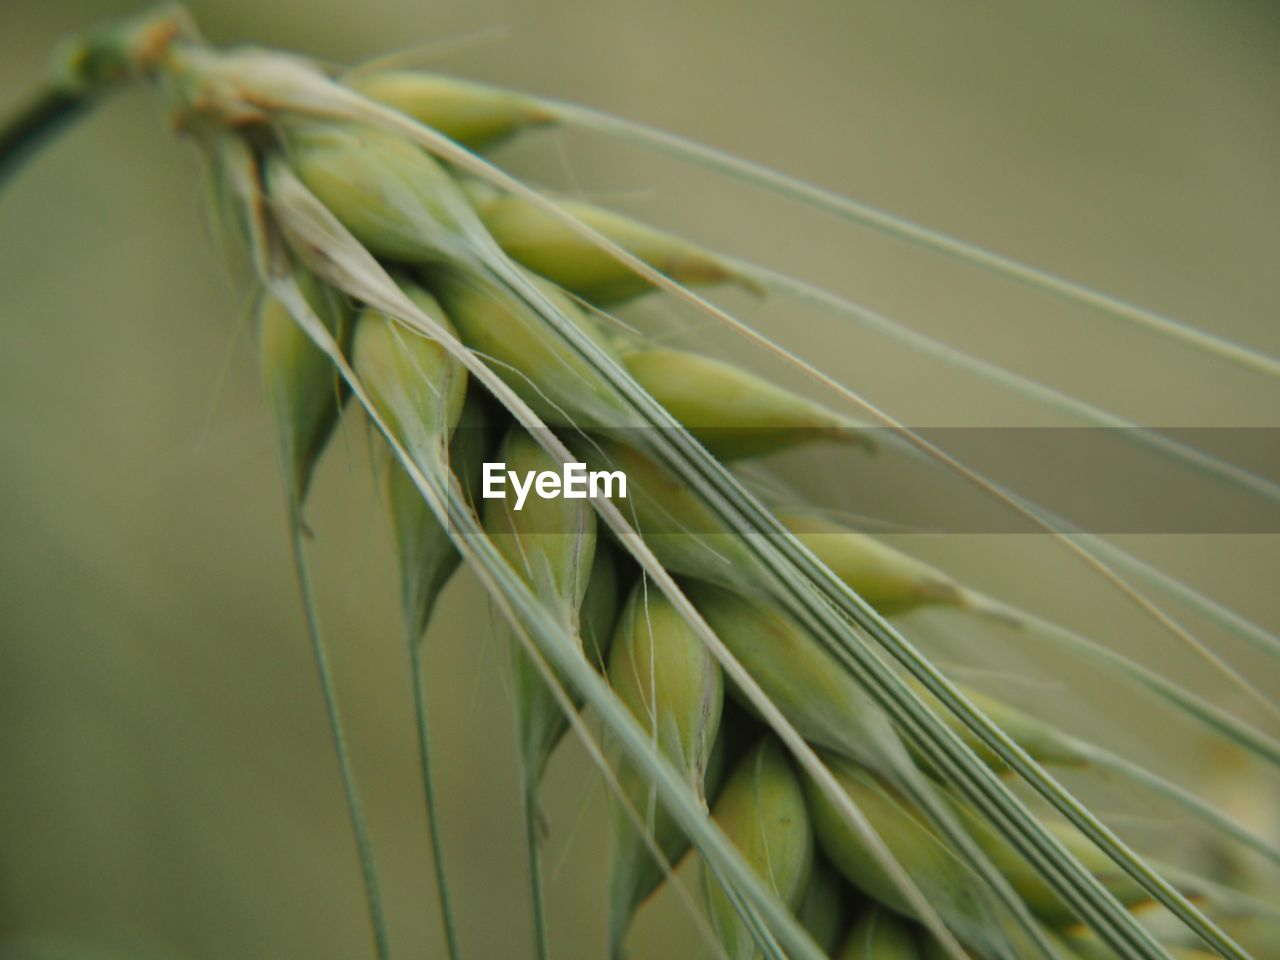 close-up, selective focus, green color, growth, plant, no people, focus on foreground, nature, day, crop, agriculture, cereal plant, rope, outdoors, grass, beauty in nature, wheat, tranquility, vulnerability, fragility